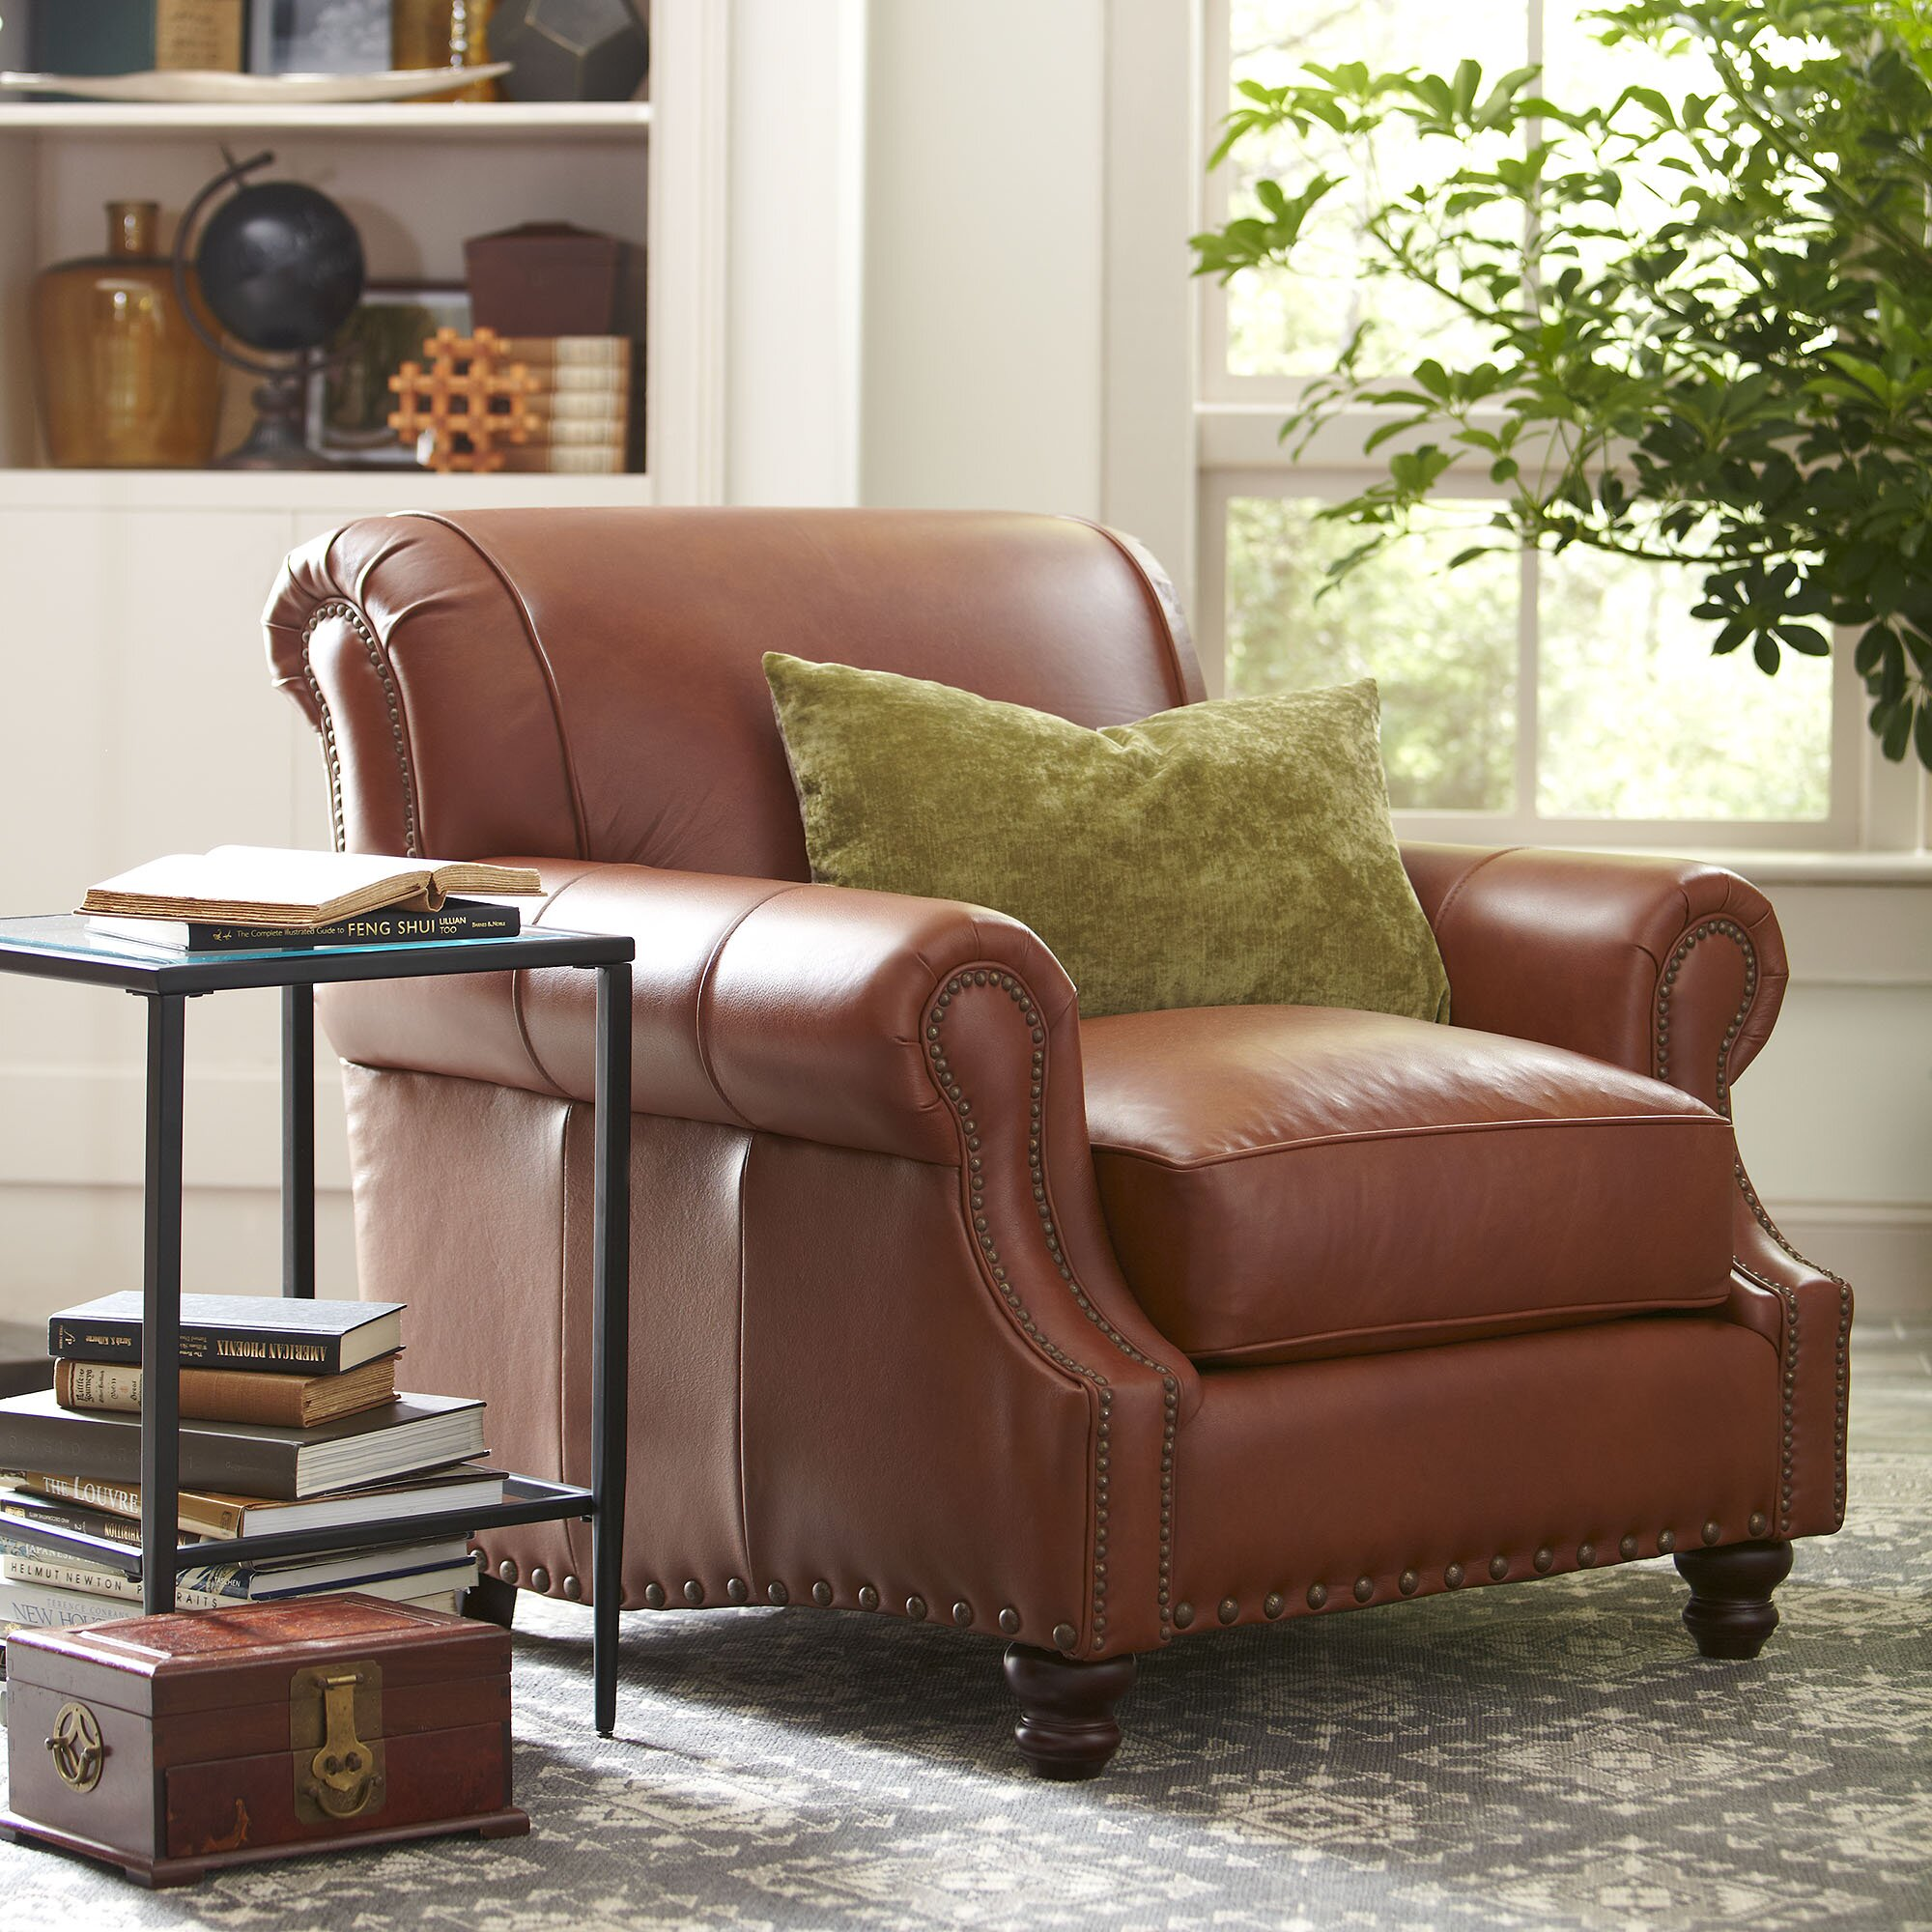 birch lane landry leather club chair - Brown Leather Club Chair